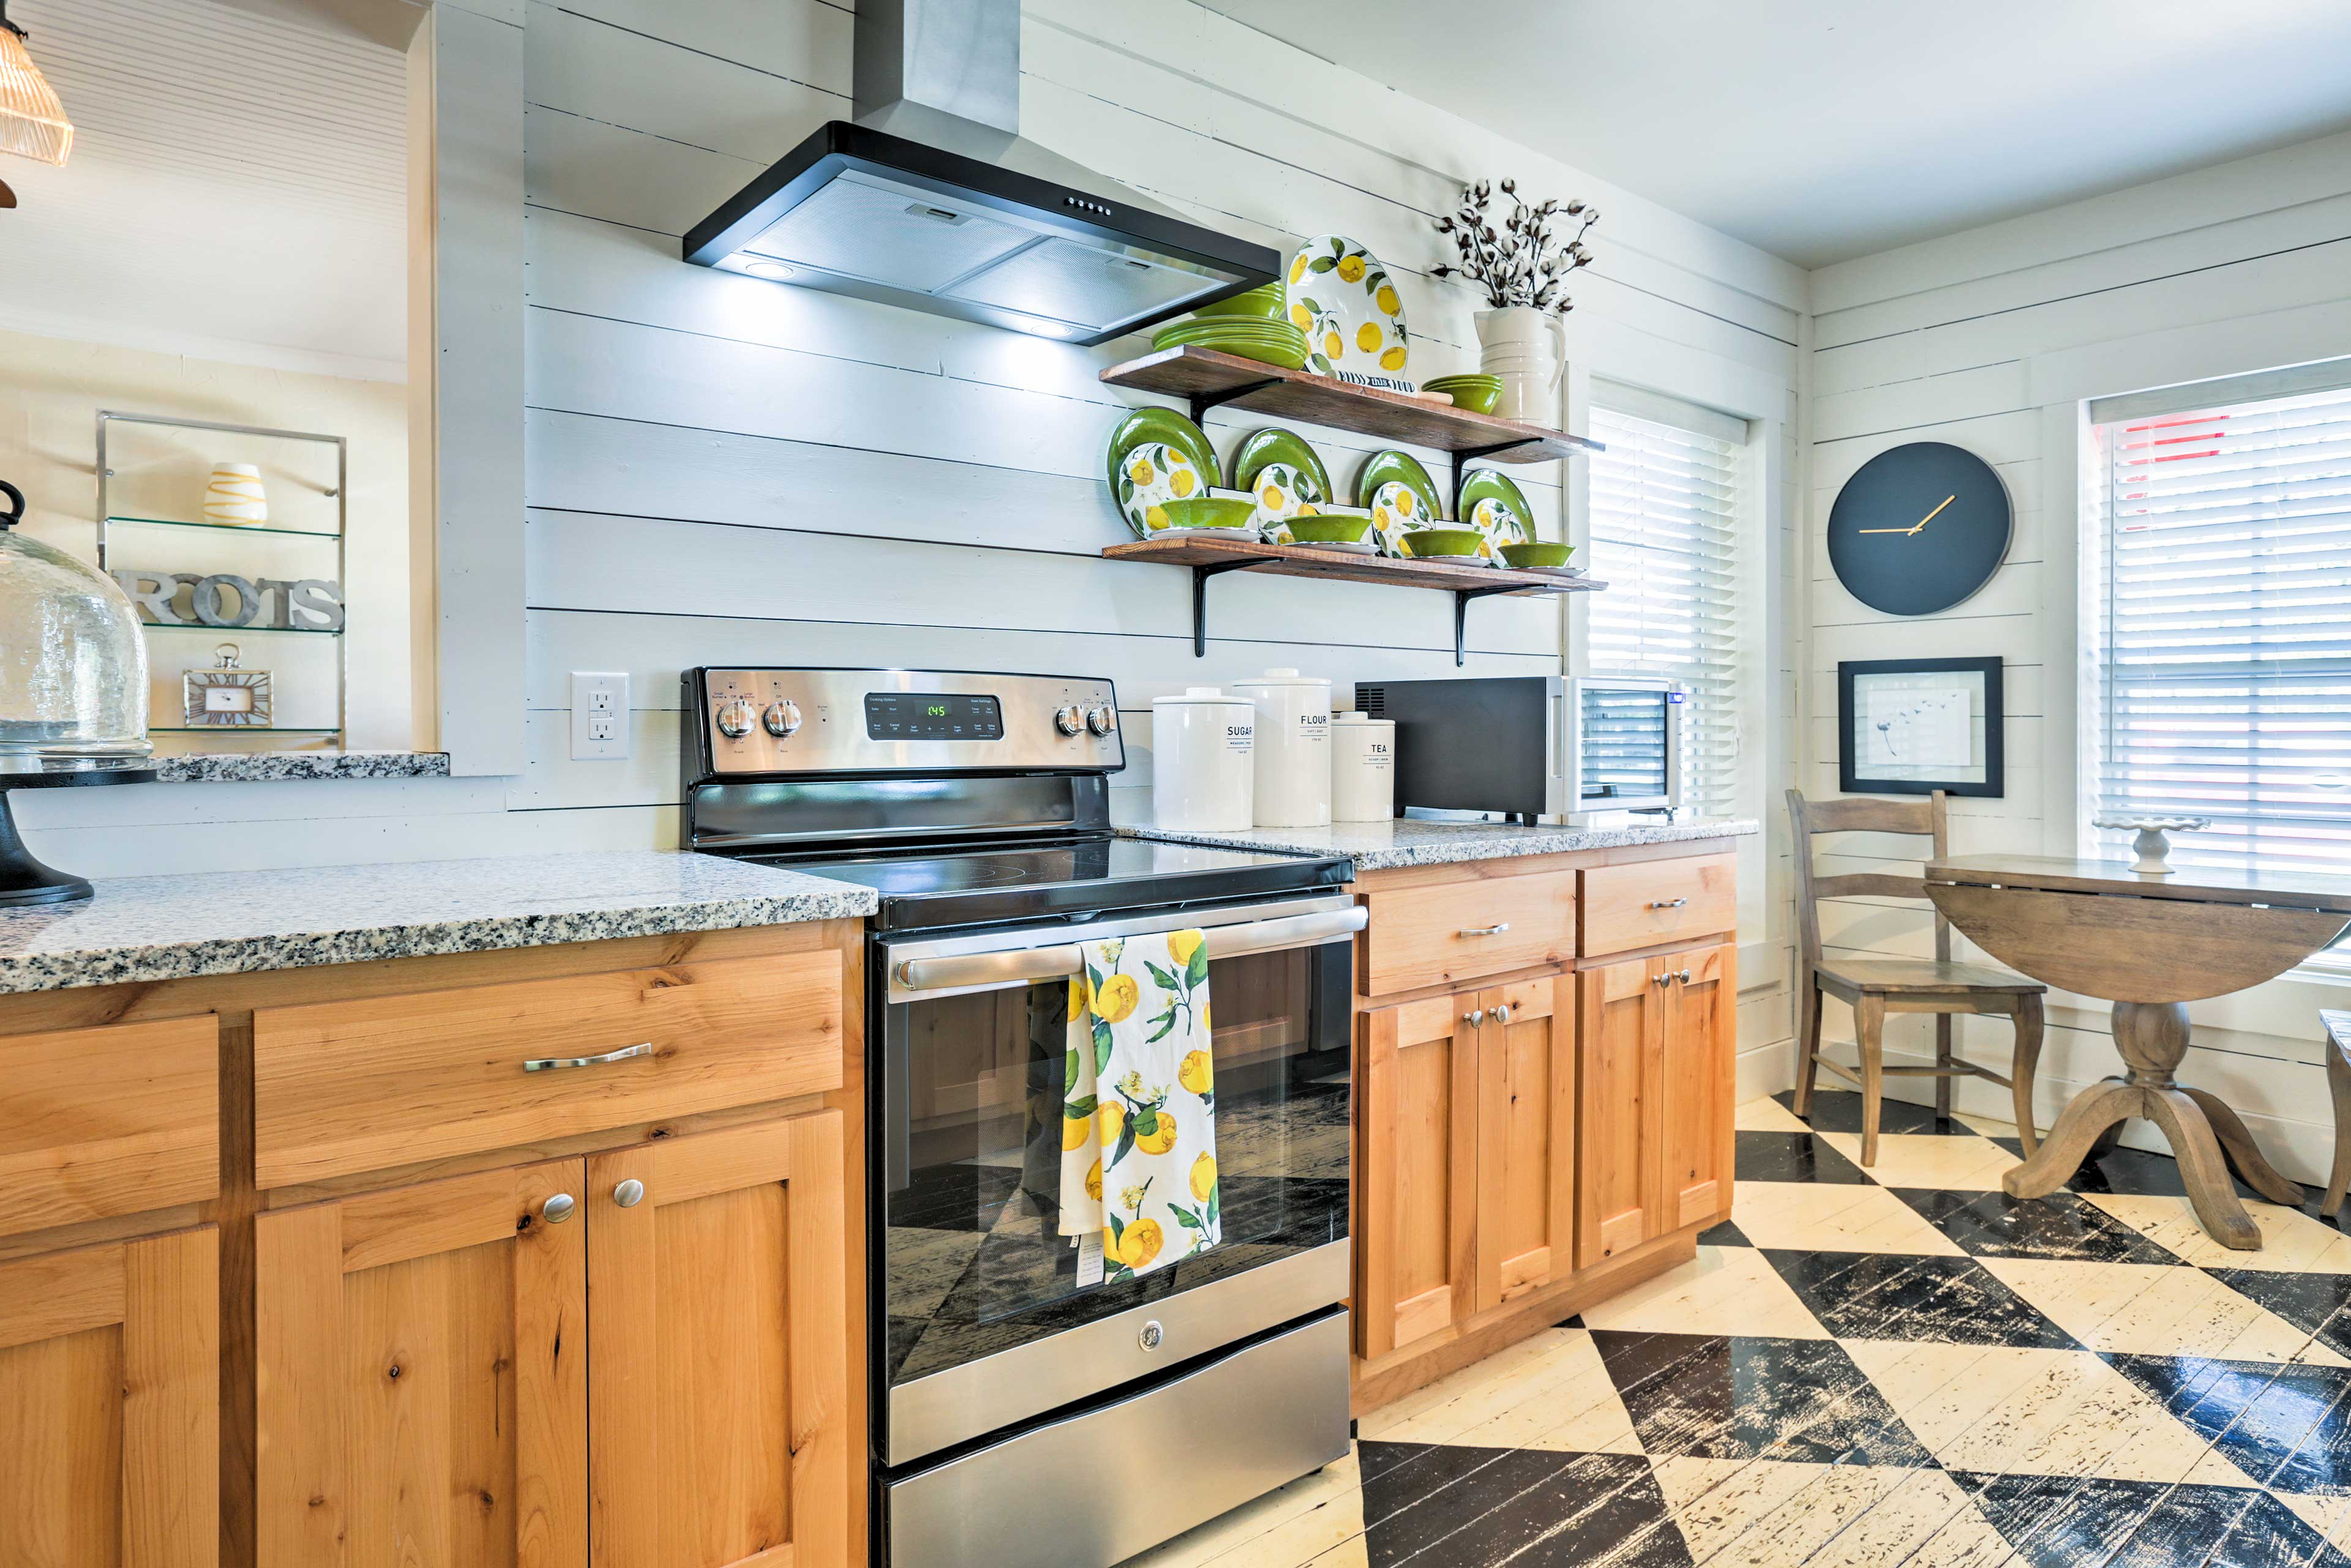 Unique flooring catches your eye as you enter the fully equipped kitchen with stainless steel appliances and a small breakfast table with seating for 2.